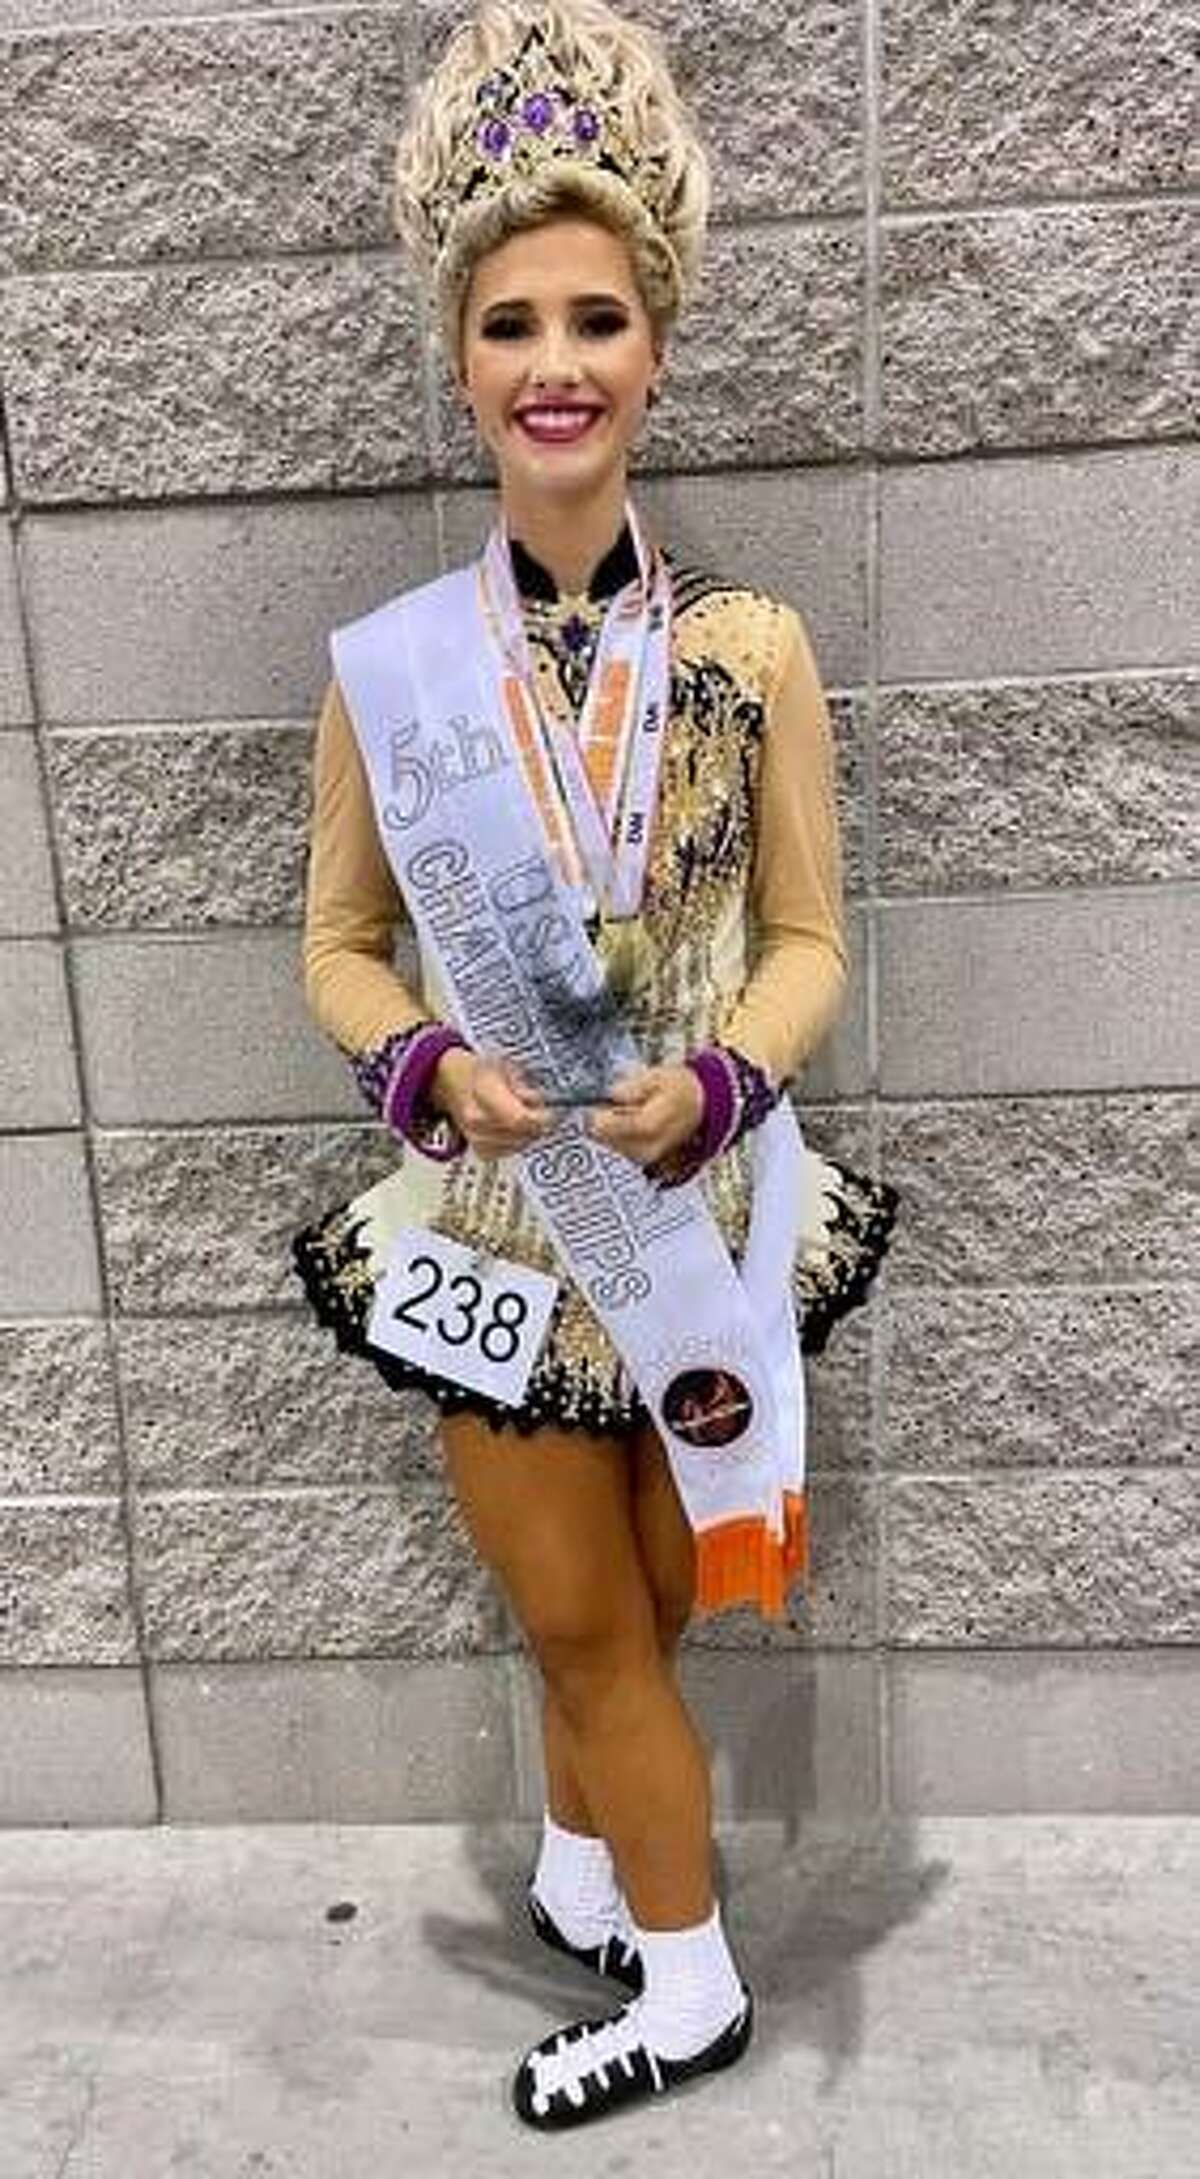 Stamford resident Erin Dixon finished fifth in the under-16 category at the National Irish Dance Championships in July.